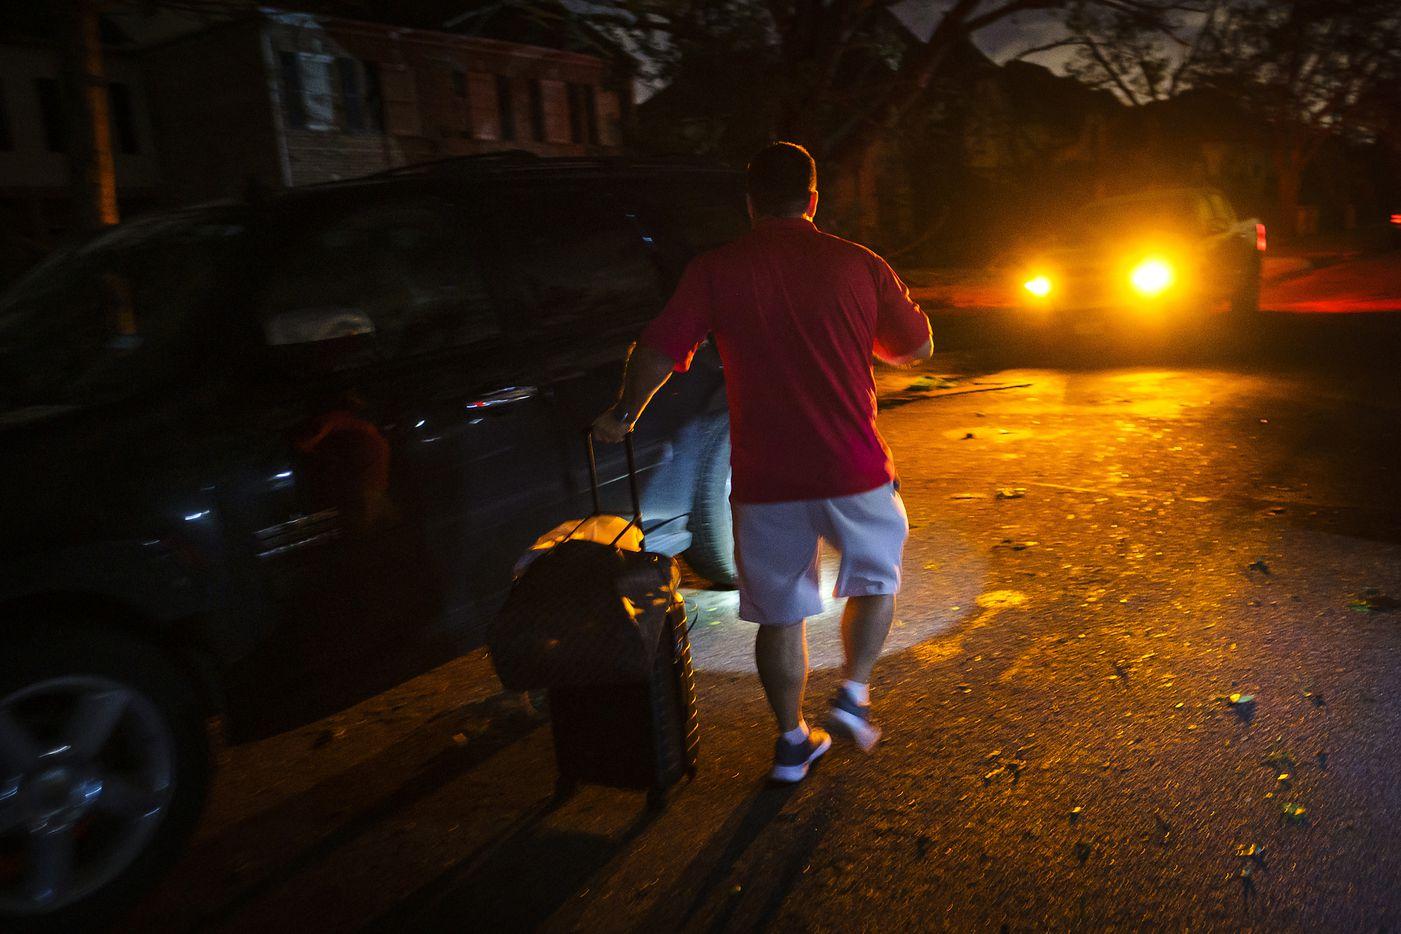 A resident takes a suitcase to his car in a darkened neighborhood near the intersection of Royal and Hillcrest that was damaged by a tornado on Sunday, Oct. 20, 2019, in Dallas.